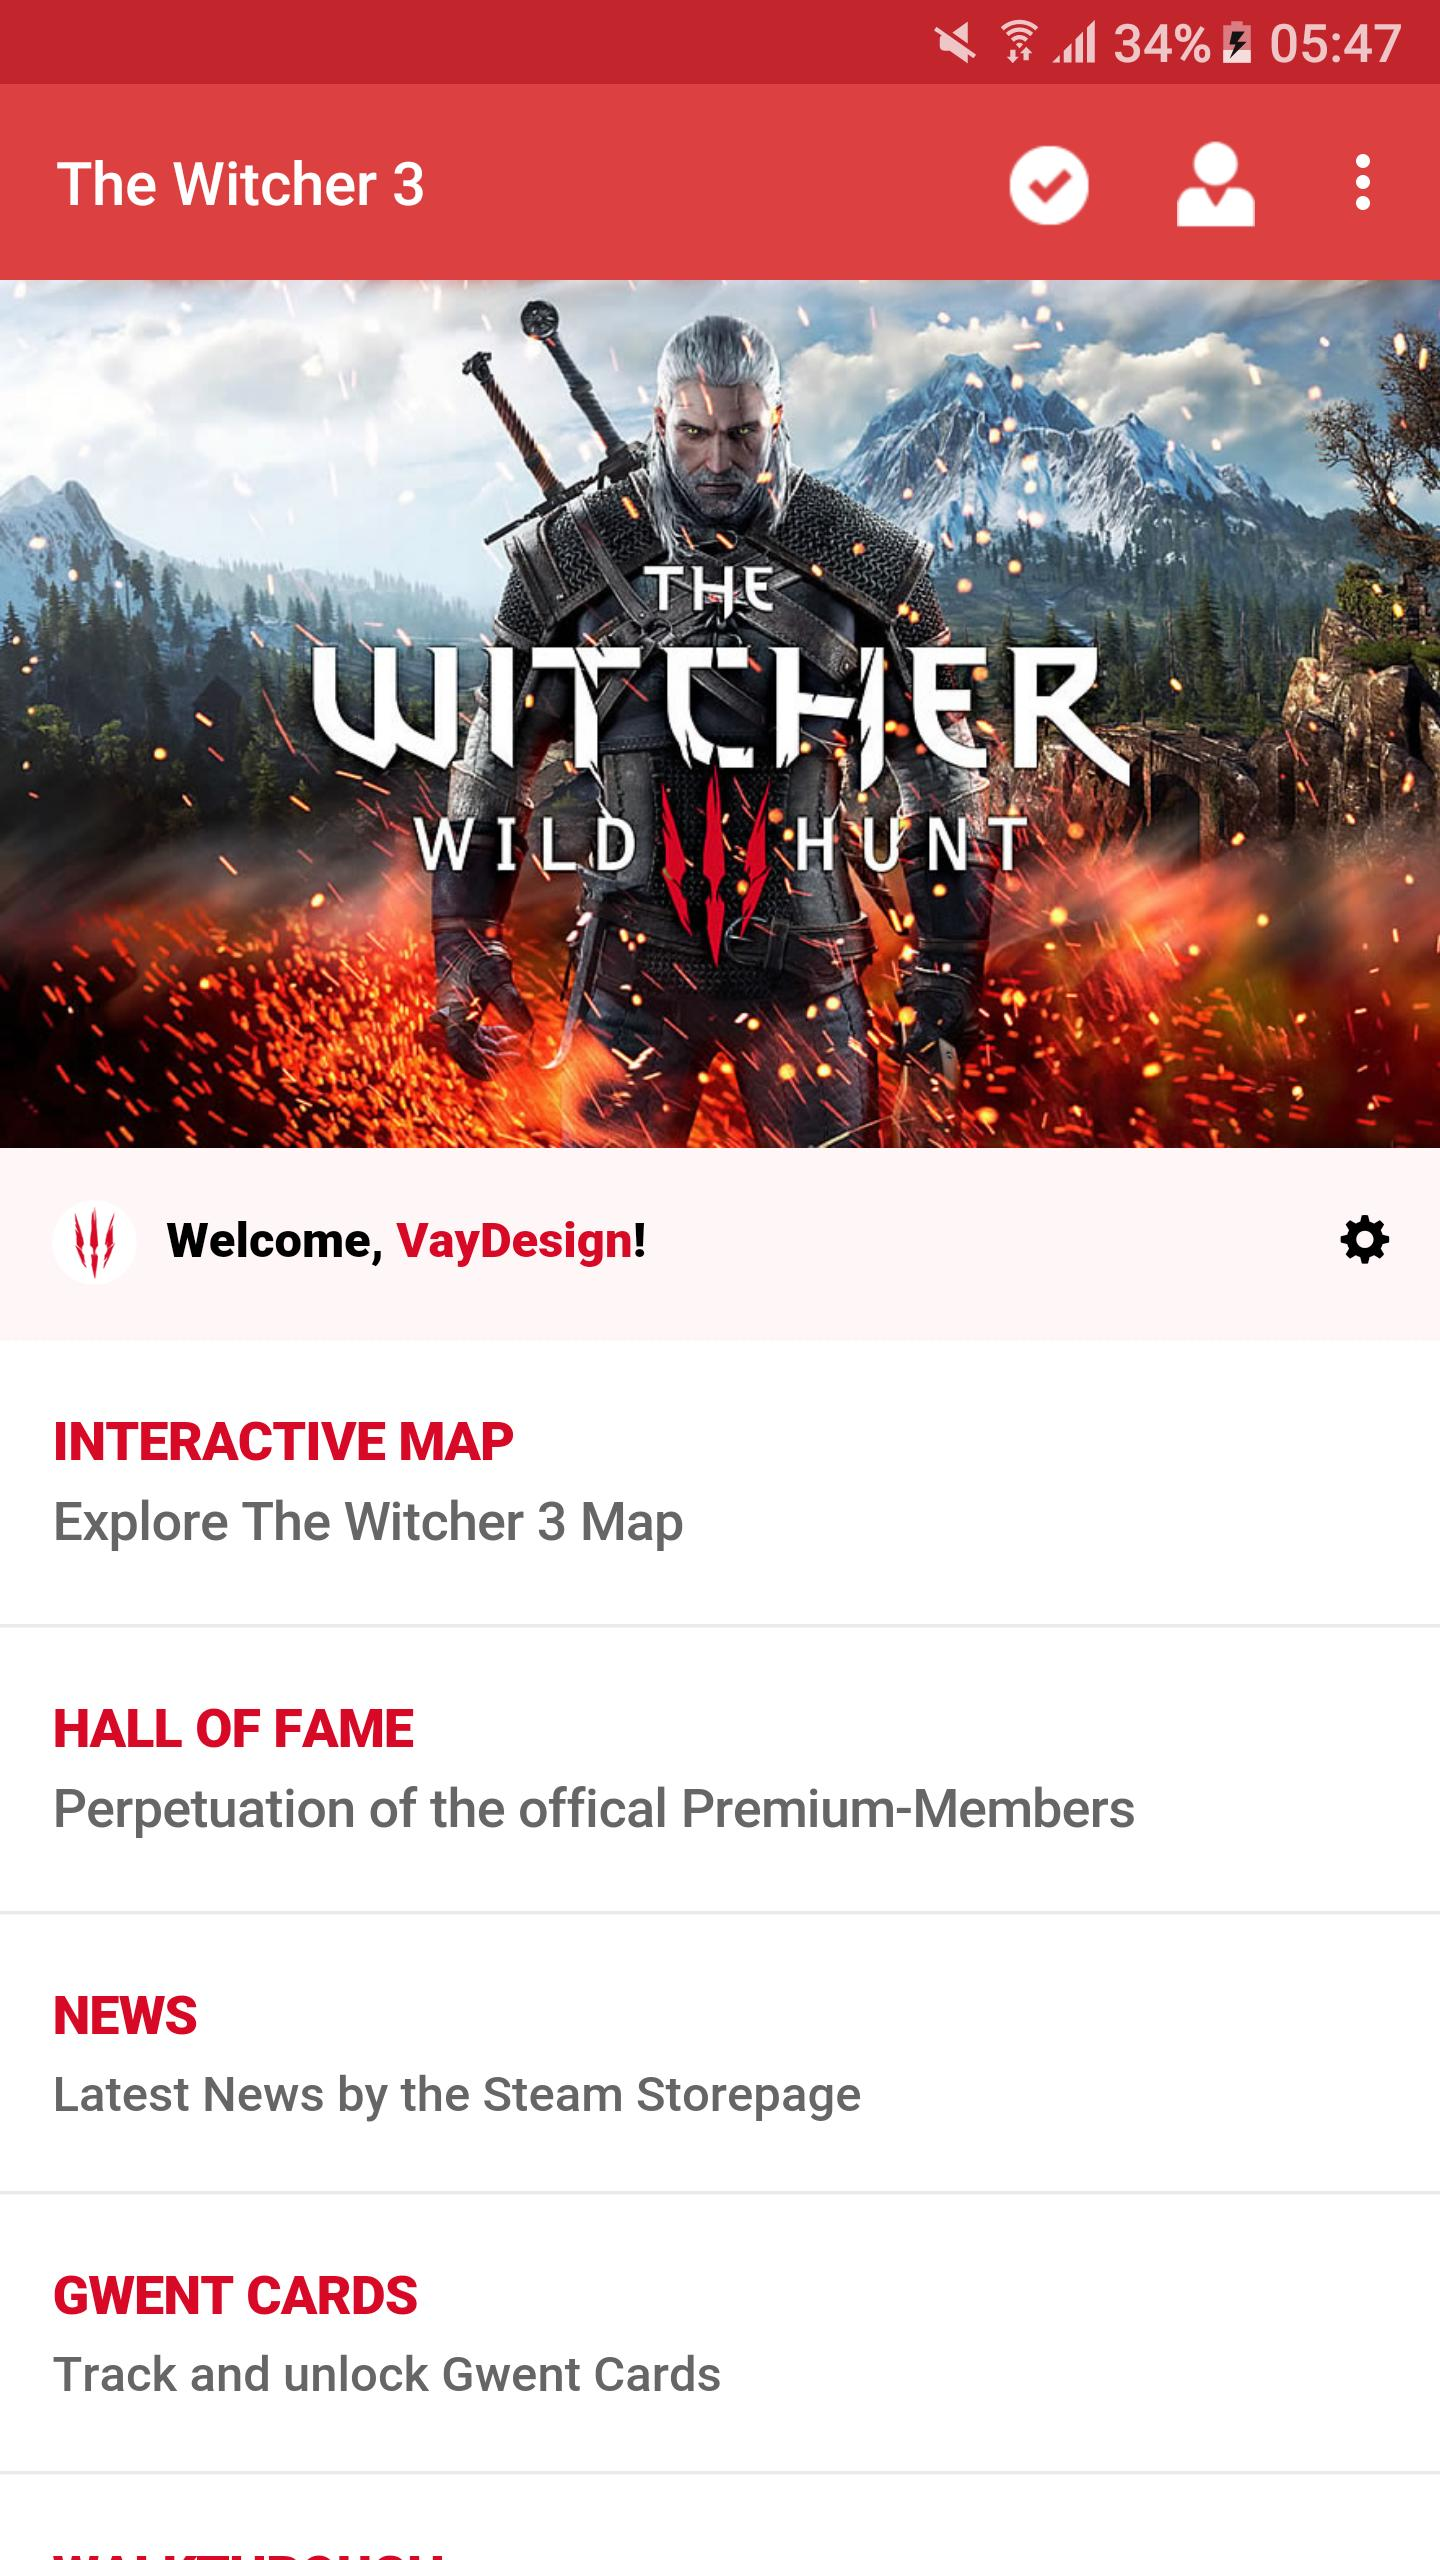 The Witcher 3 - New for Android - APK Download